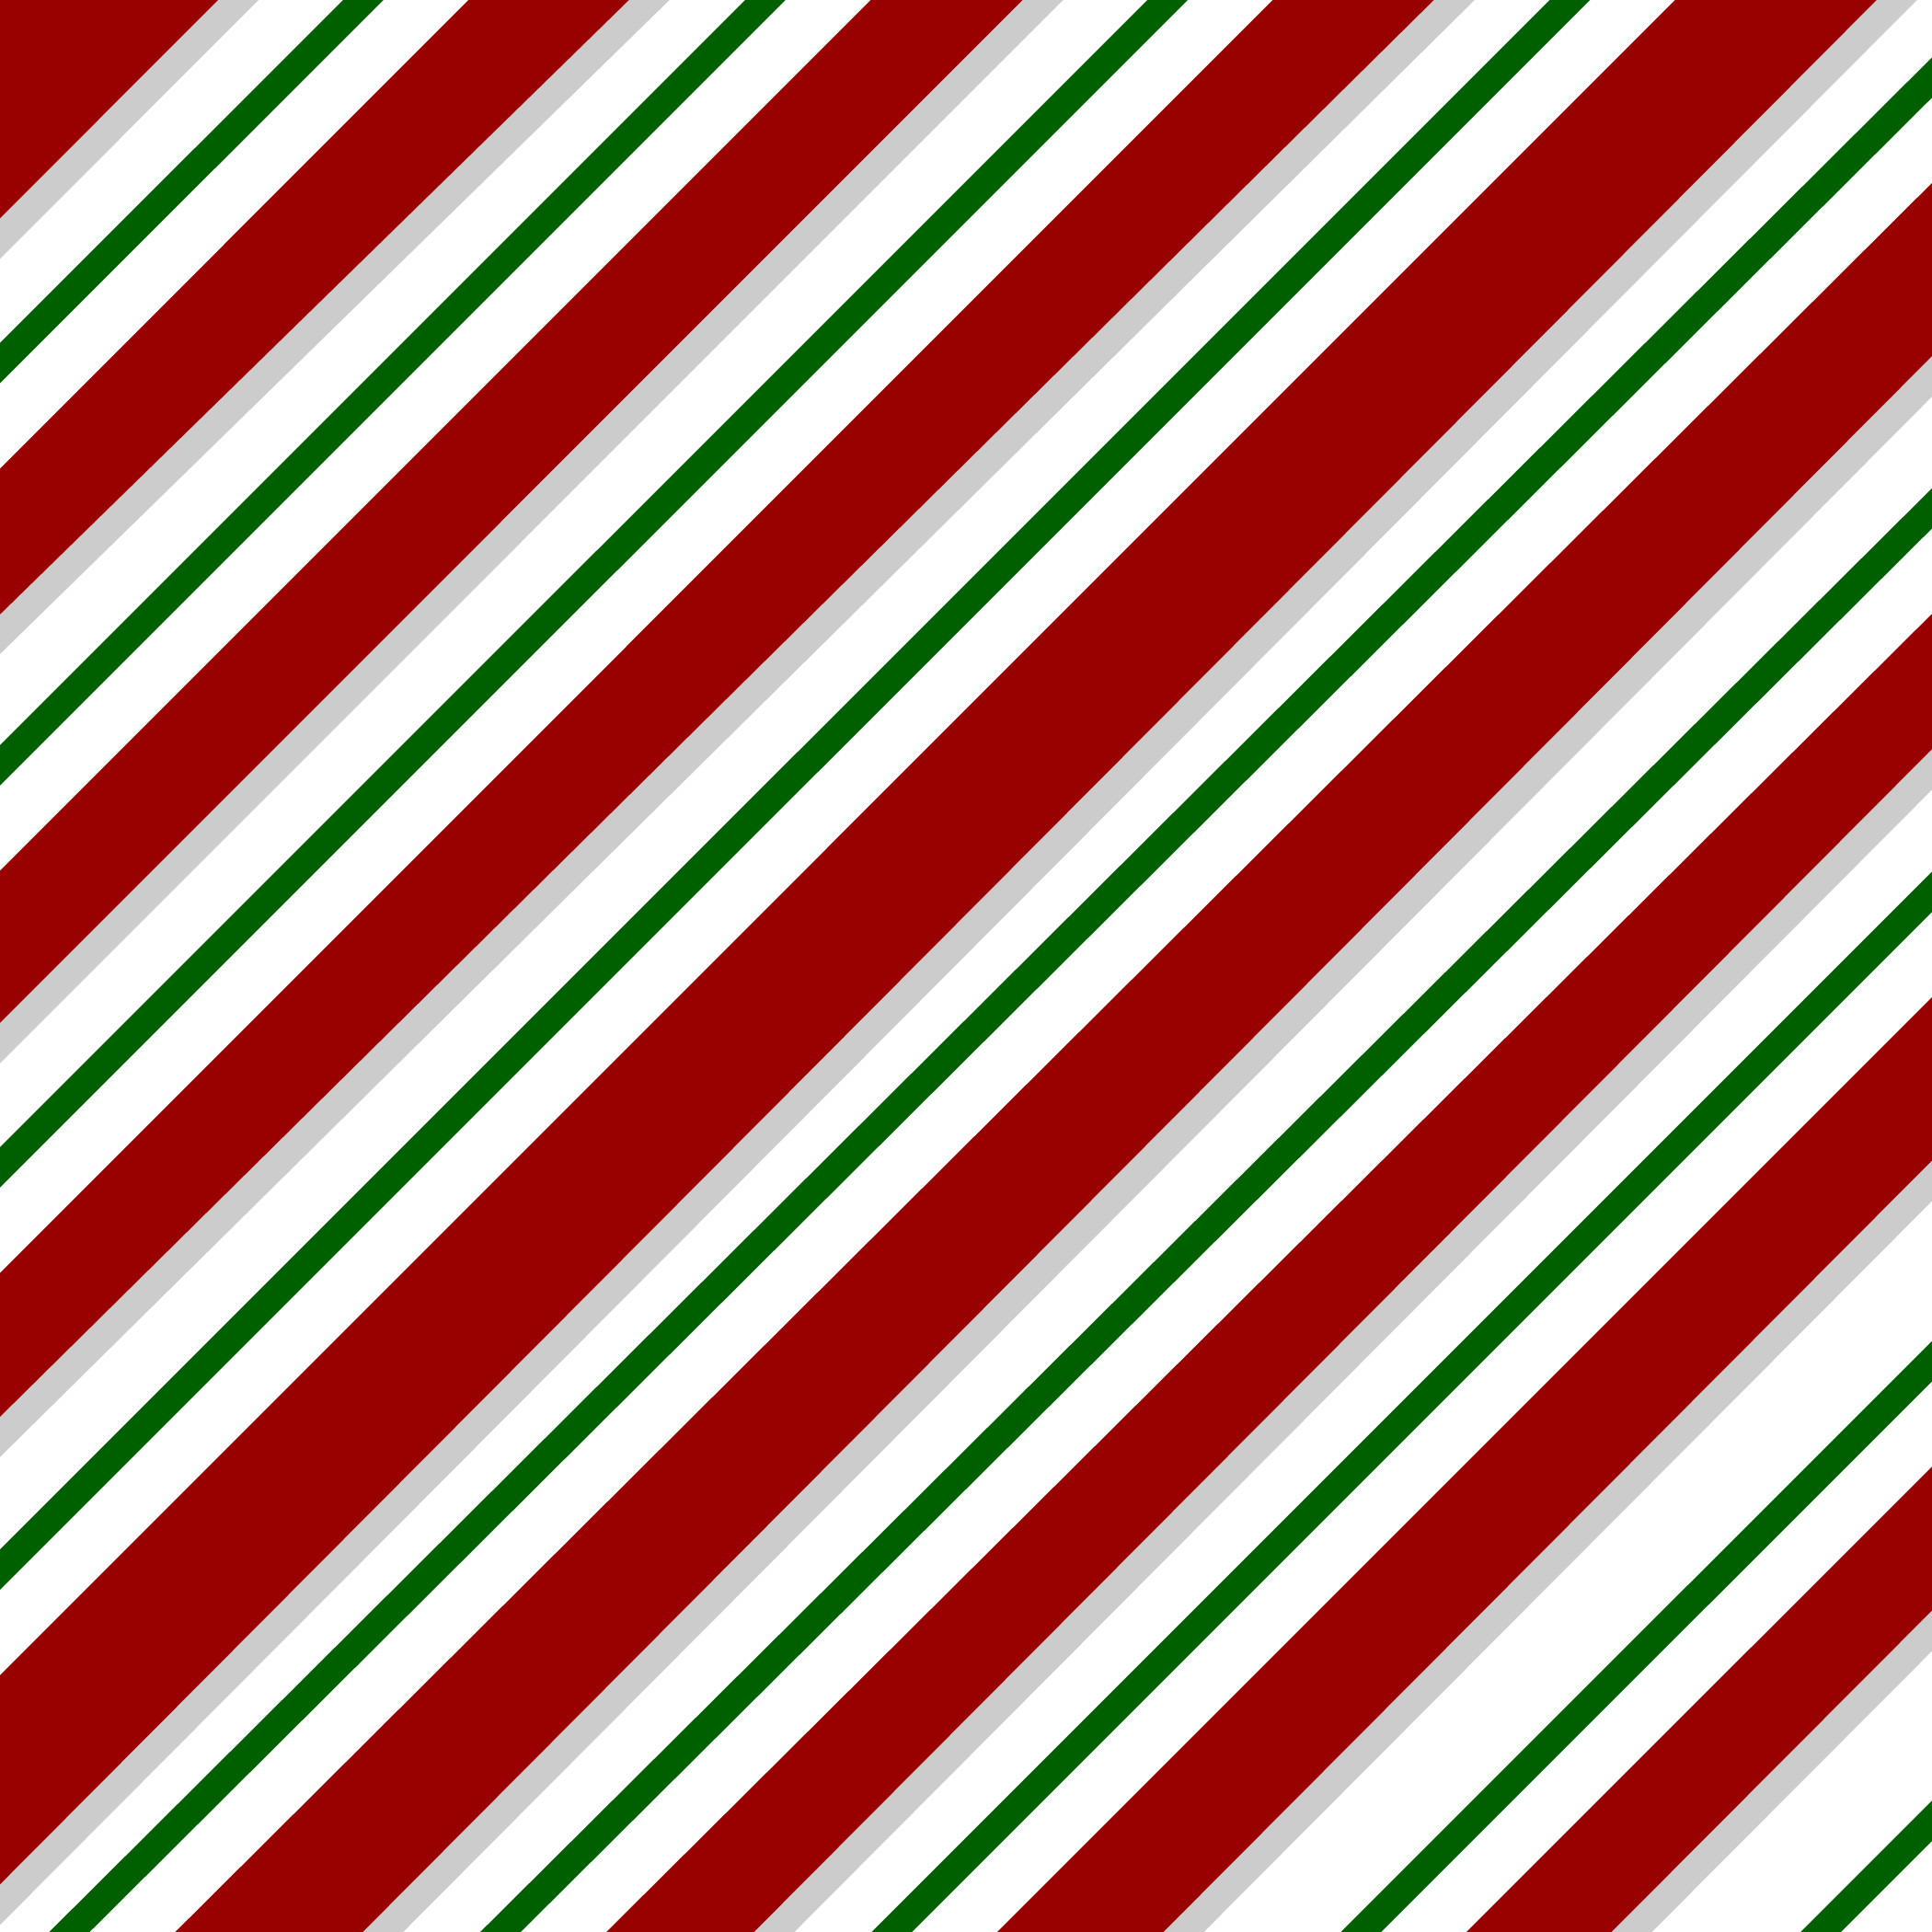 2100x2100 side striped candy cane backgrounds #13568